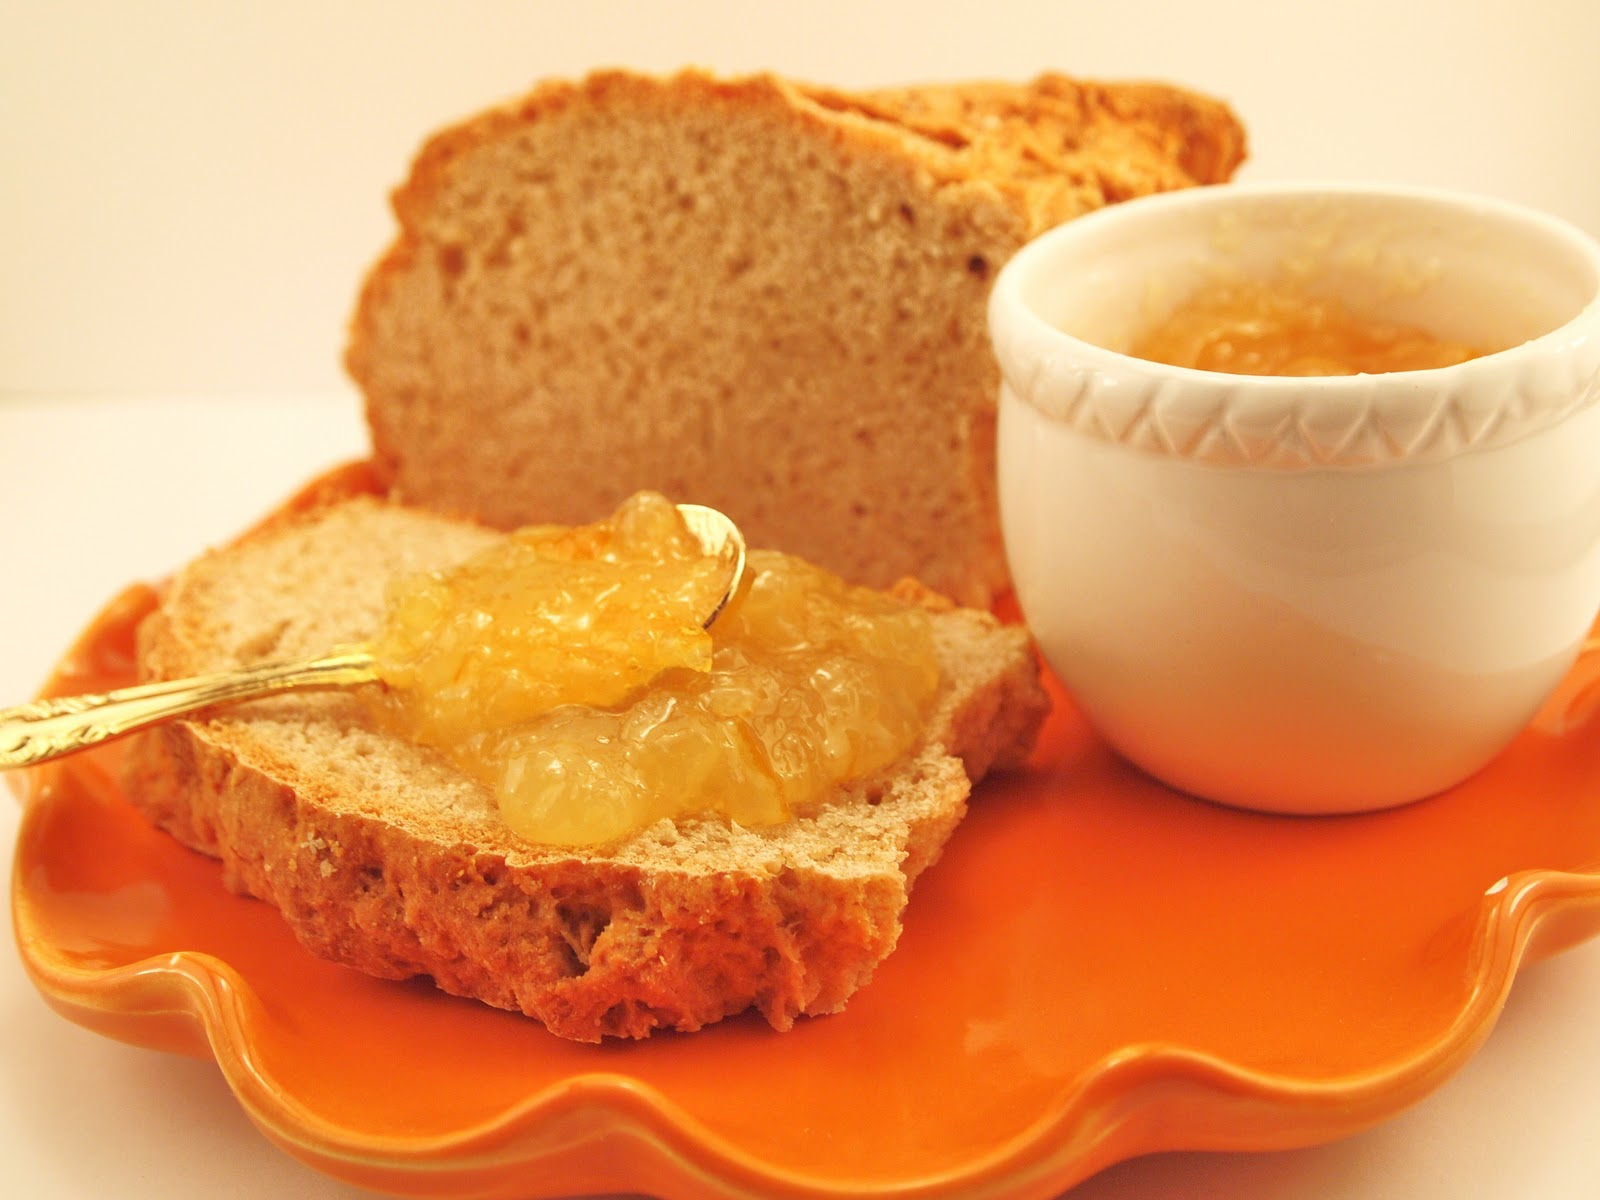 Meyer Lemon Marmalade with Irish Soda Bread